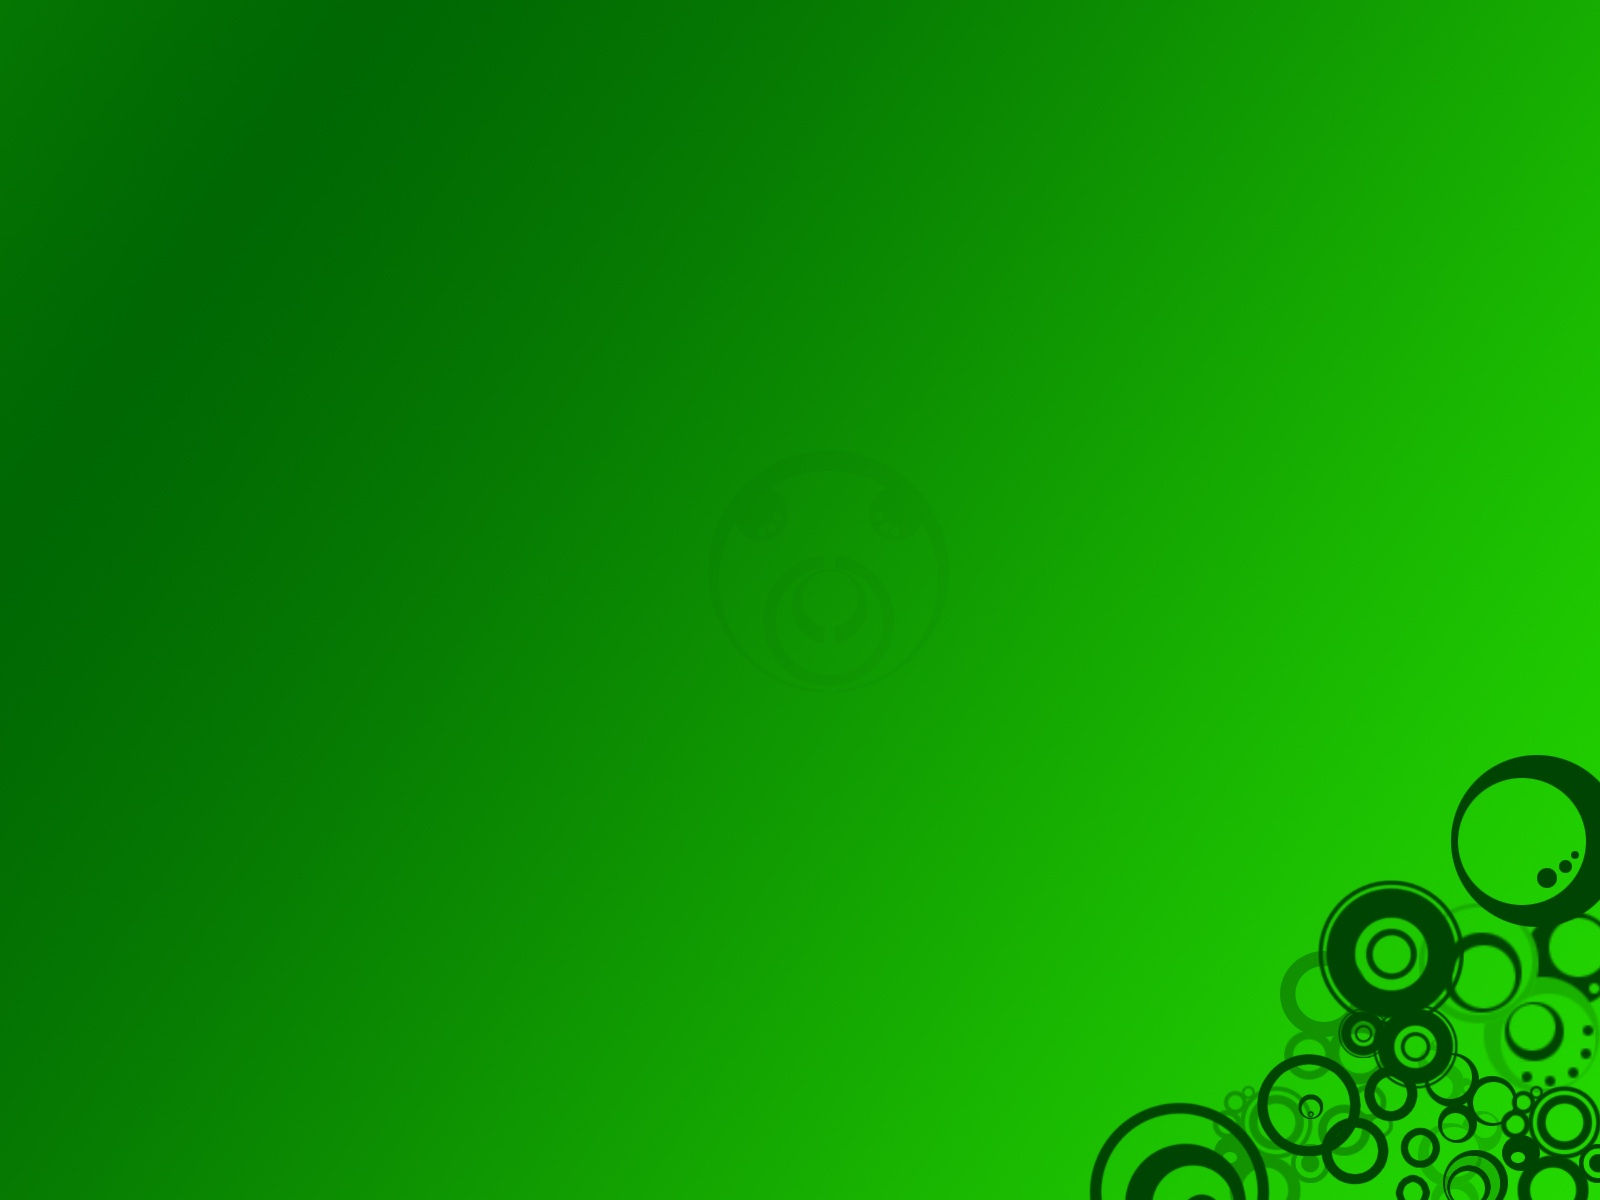 Green Wallpaper 019